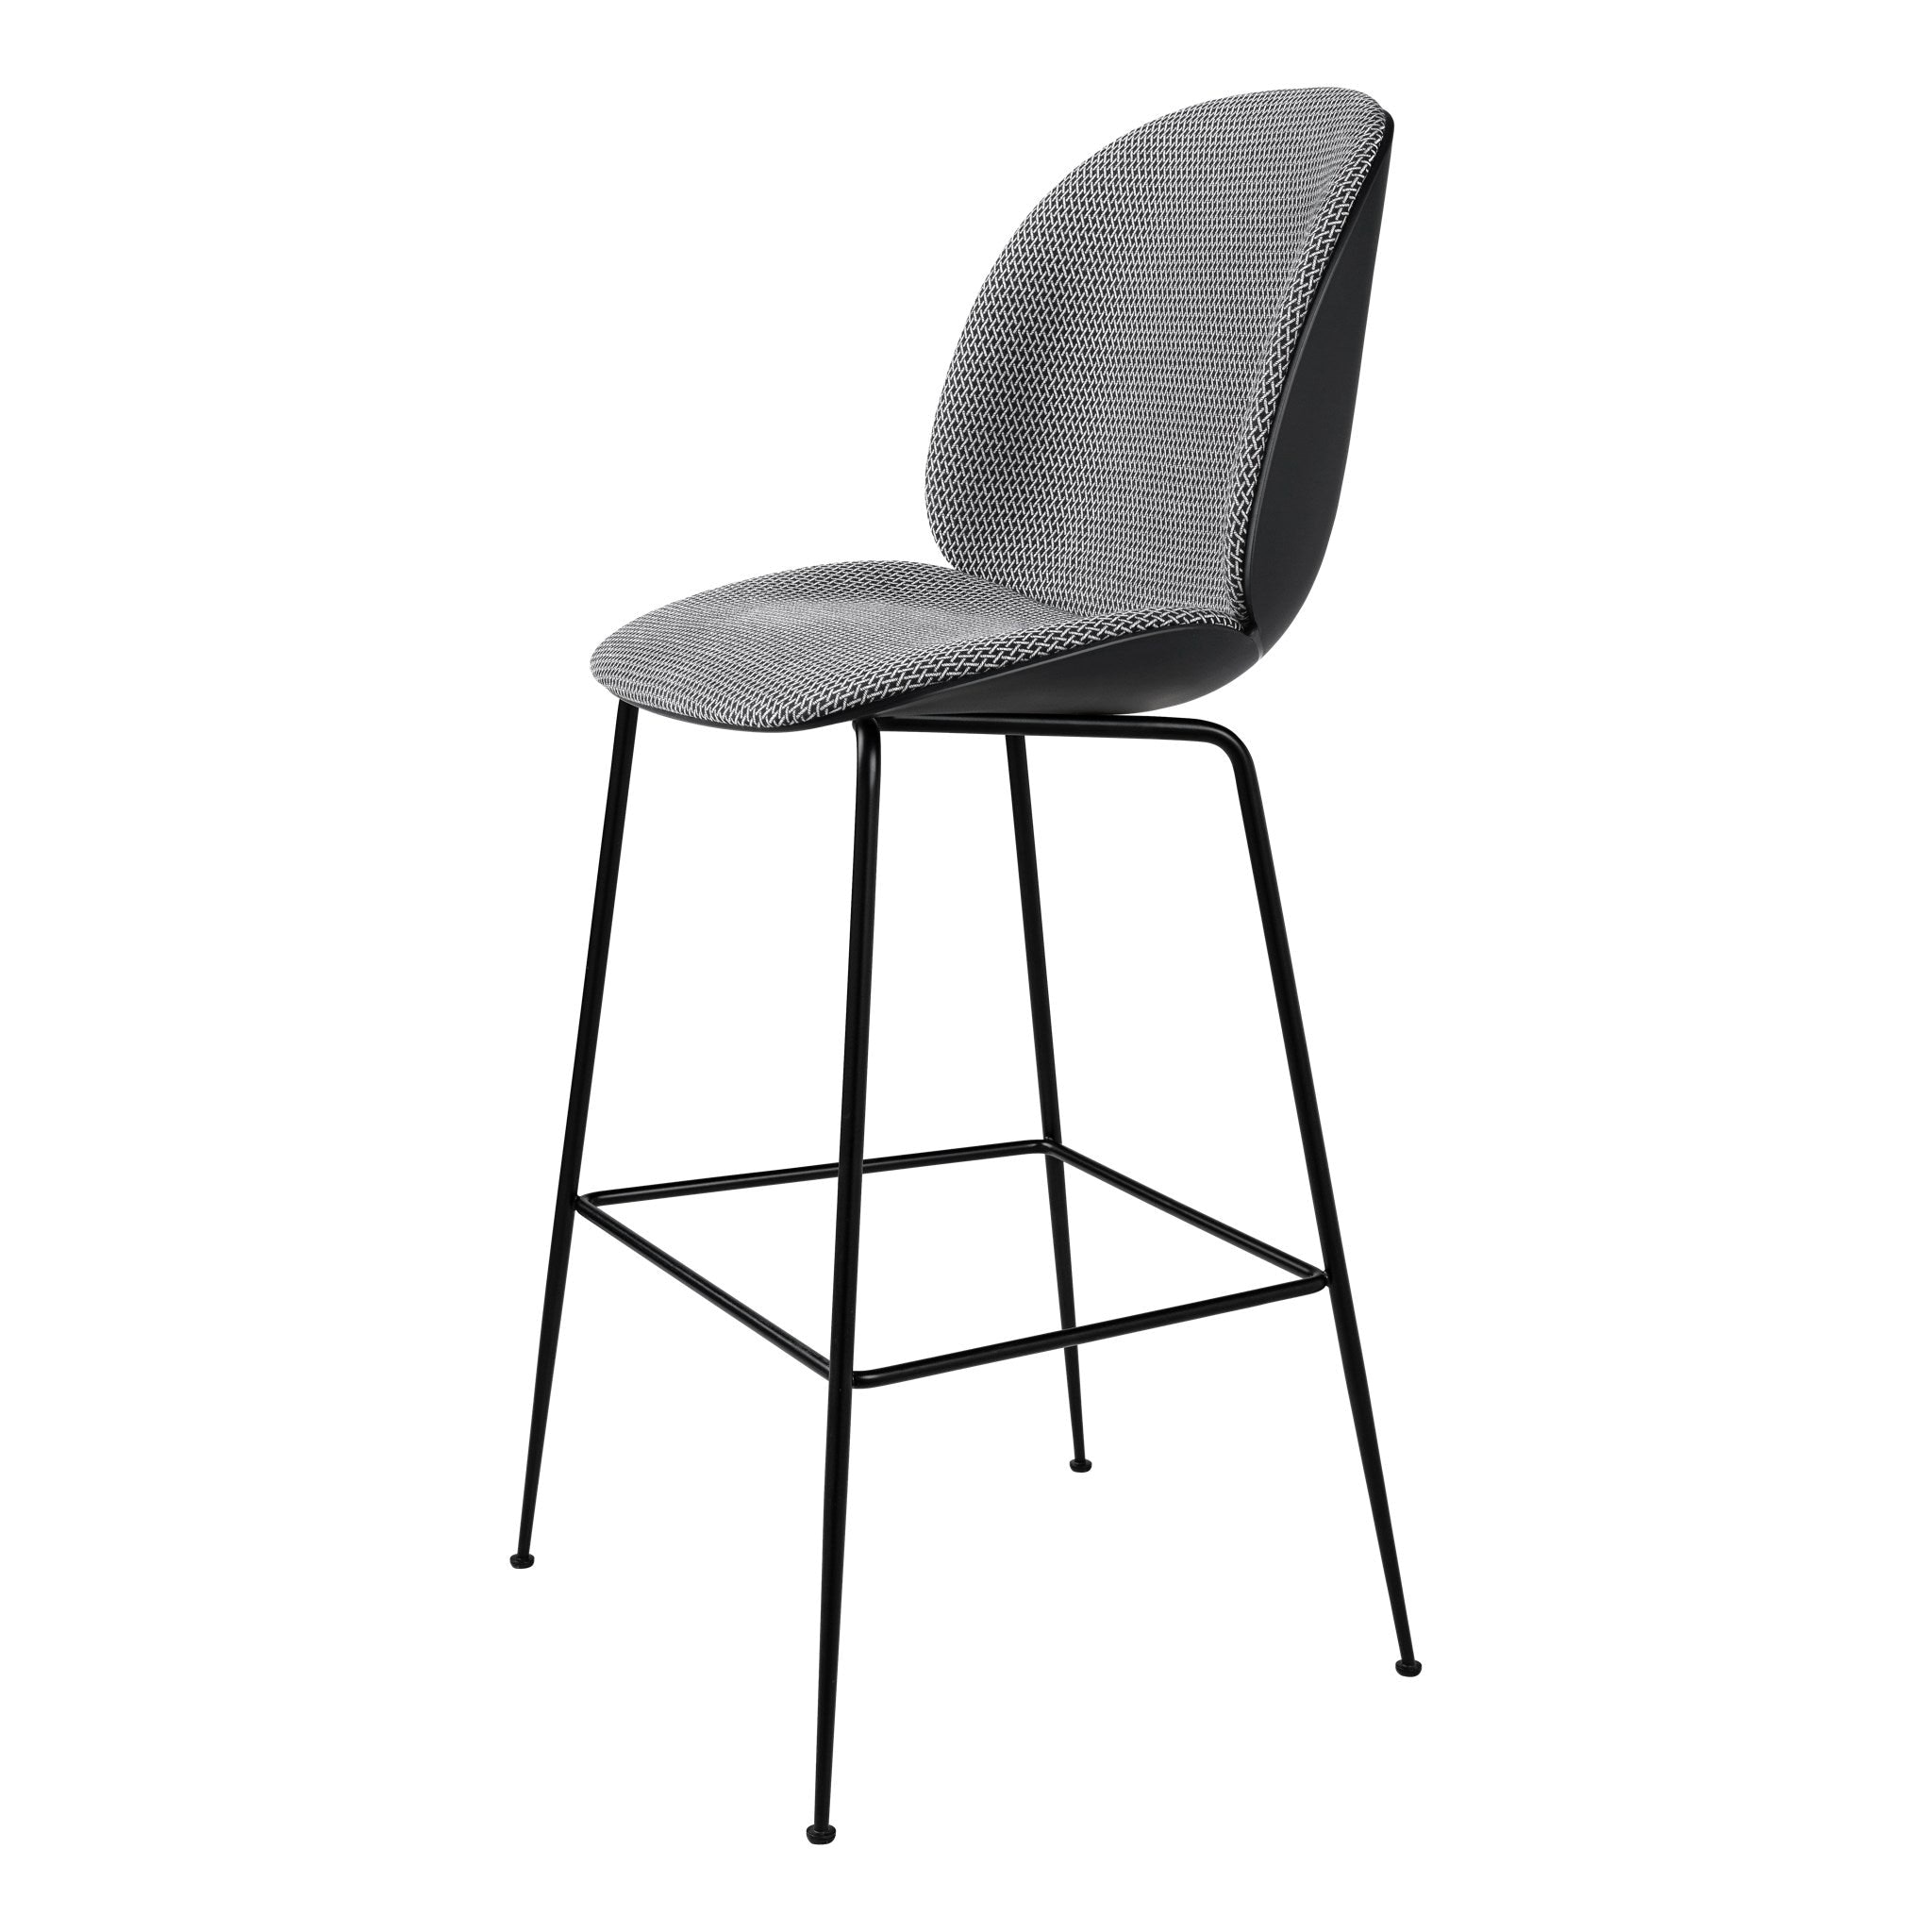 Beetle Bar Chair H75cm Front Upholstered by Gubi